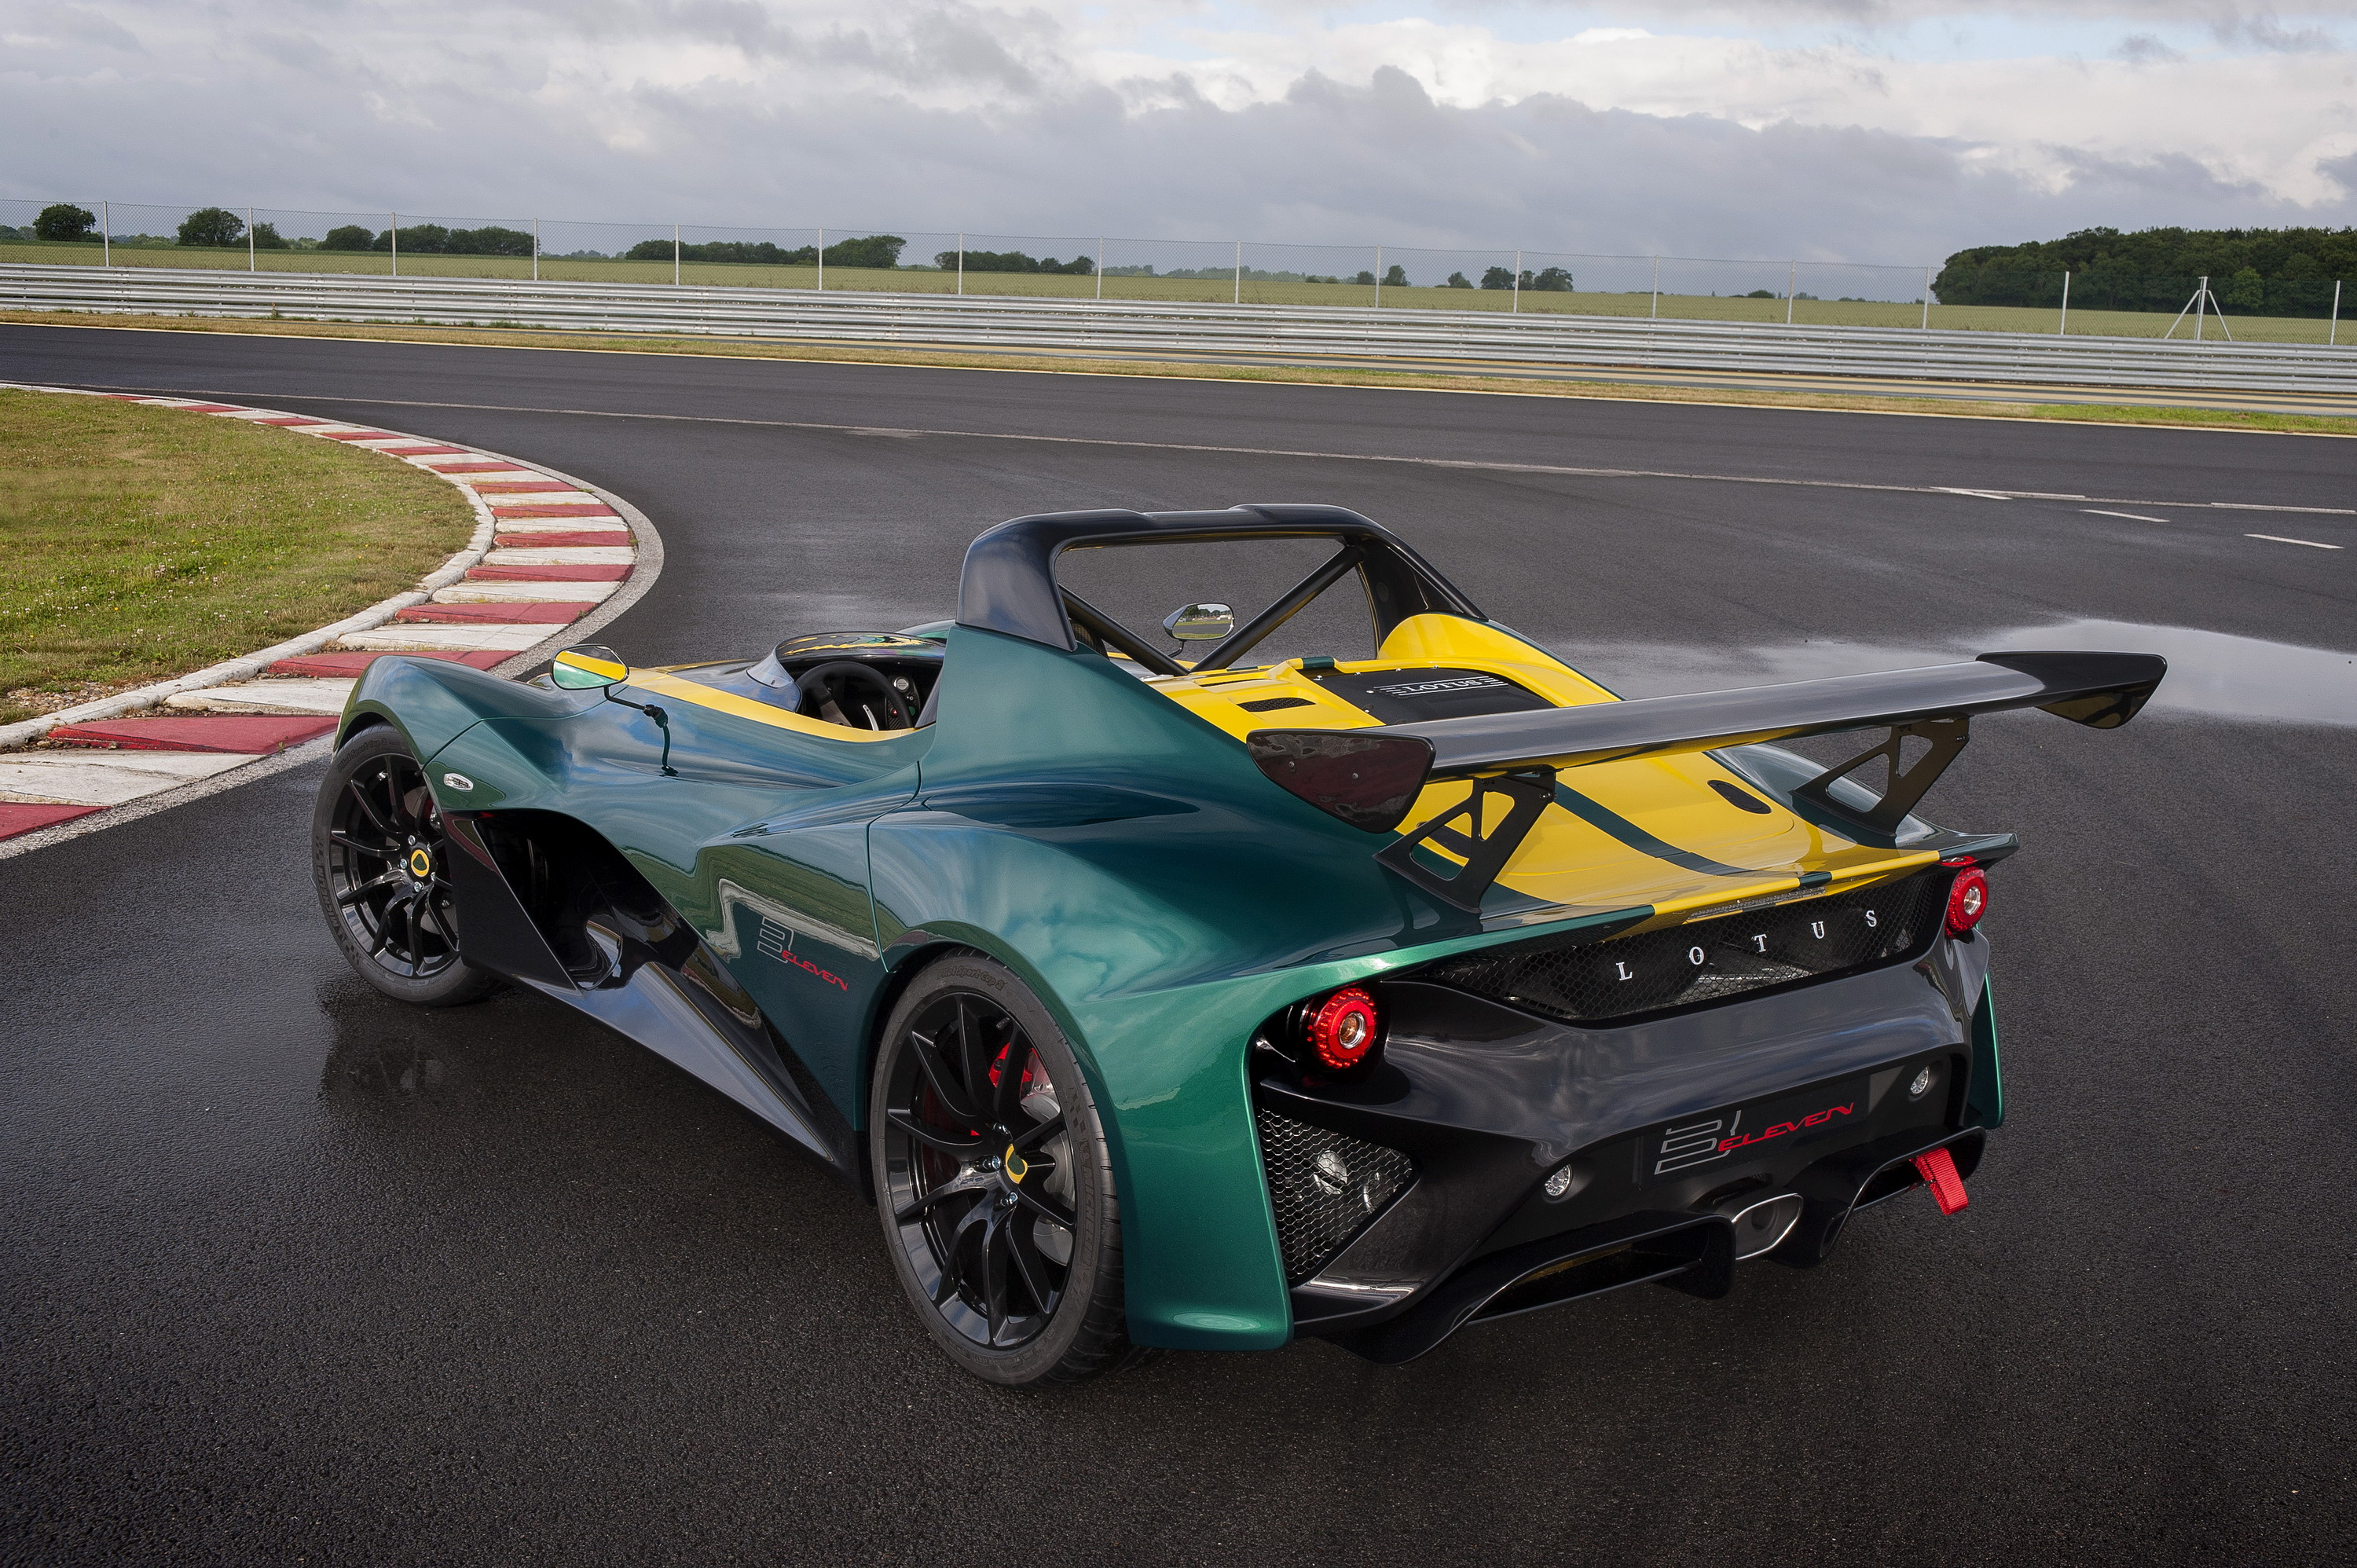 2016 Lotus 3-Eleven Review - Top Speed